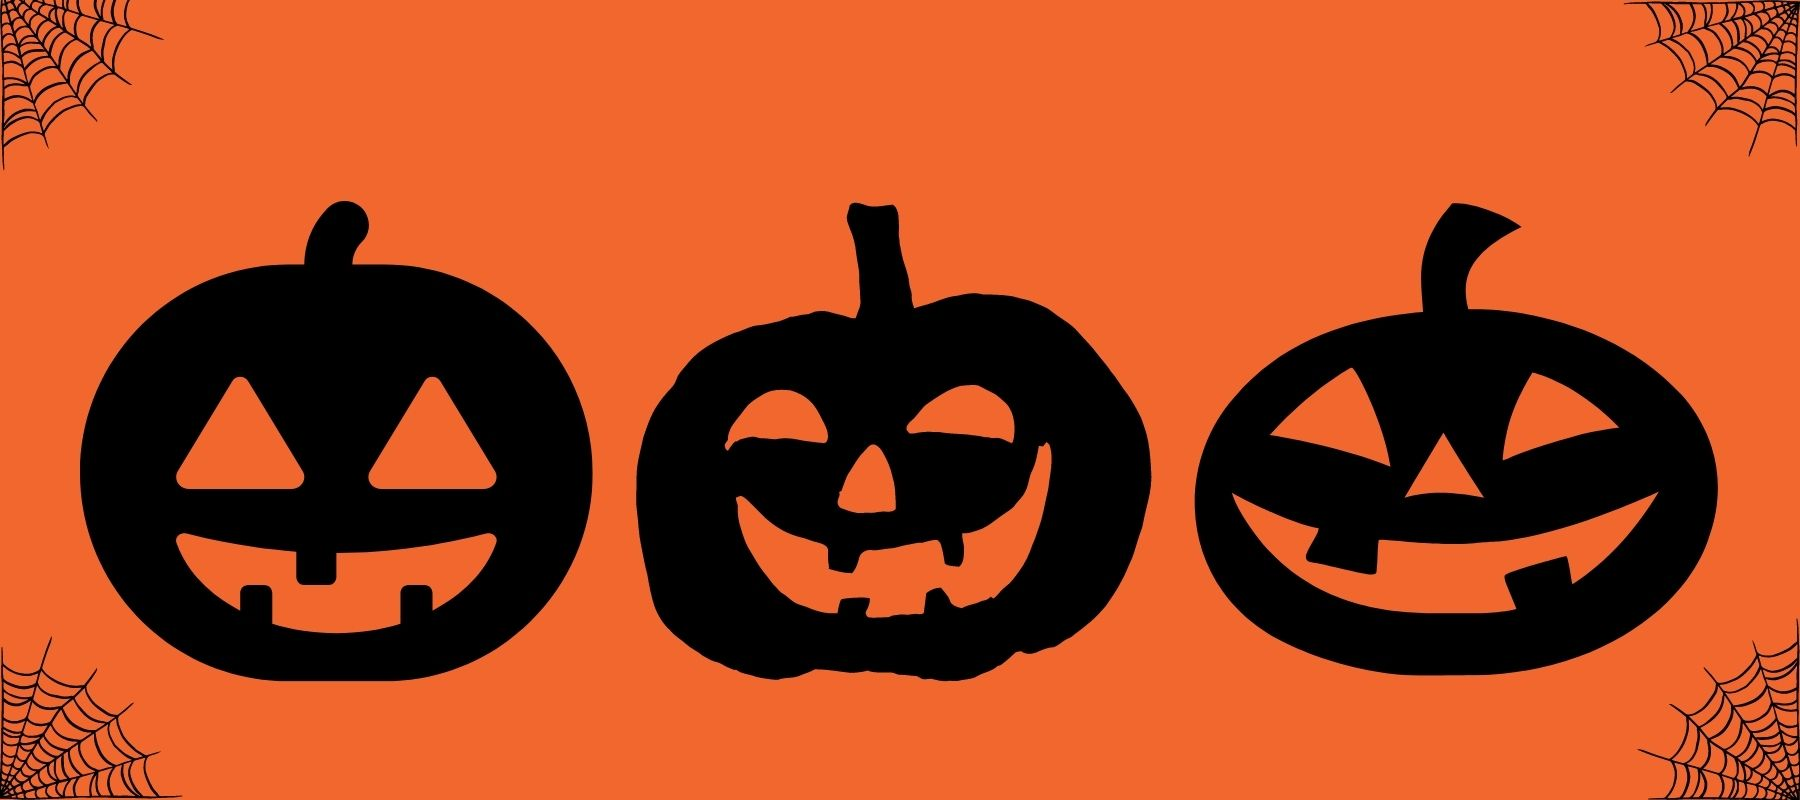 Three Black Jack-o-lanterns in front of a festive orange background